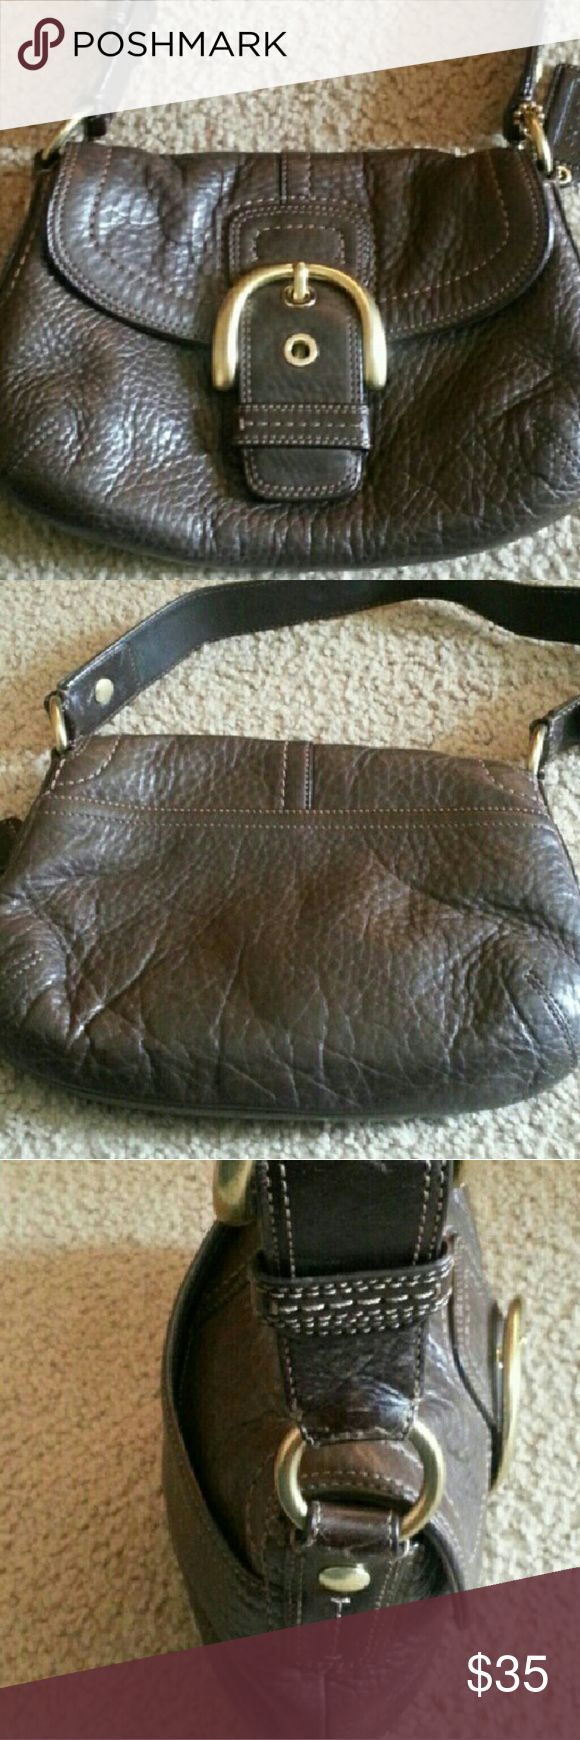 Coach hobo bag Authentic leather coach hobo bag Coach Bags